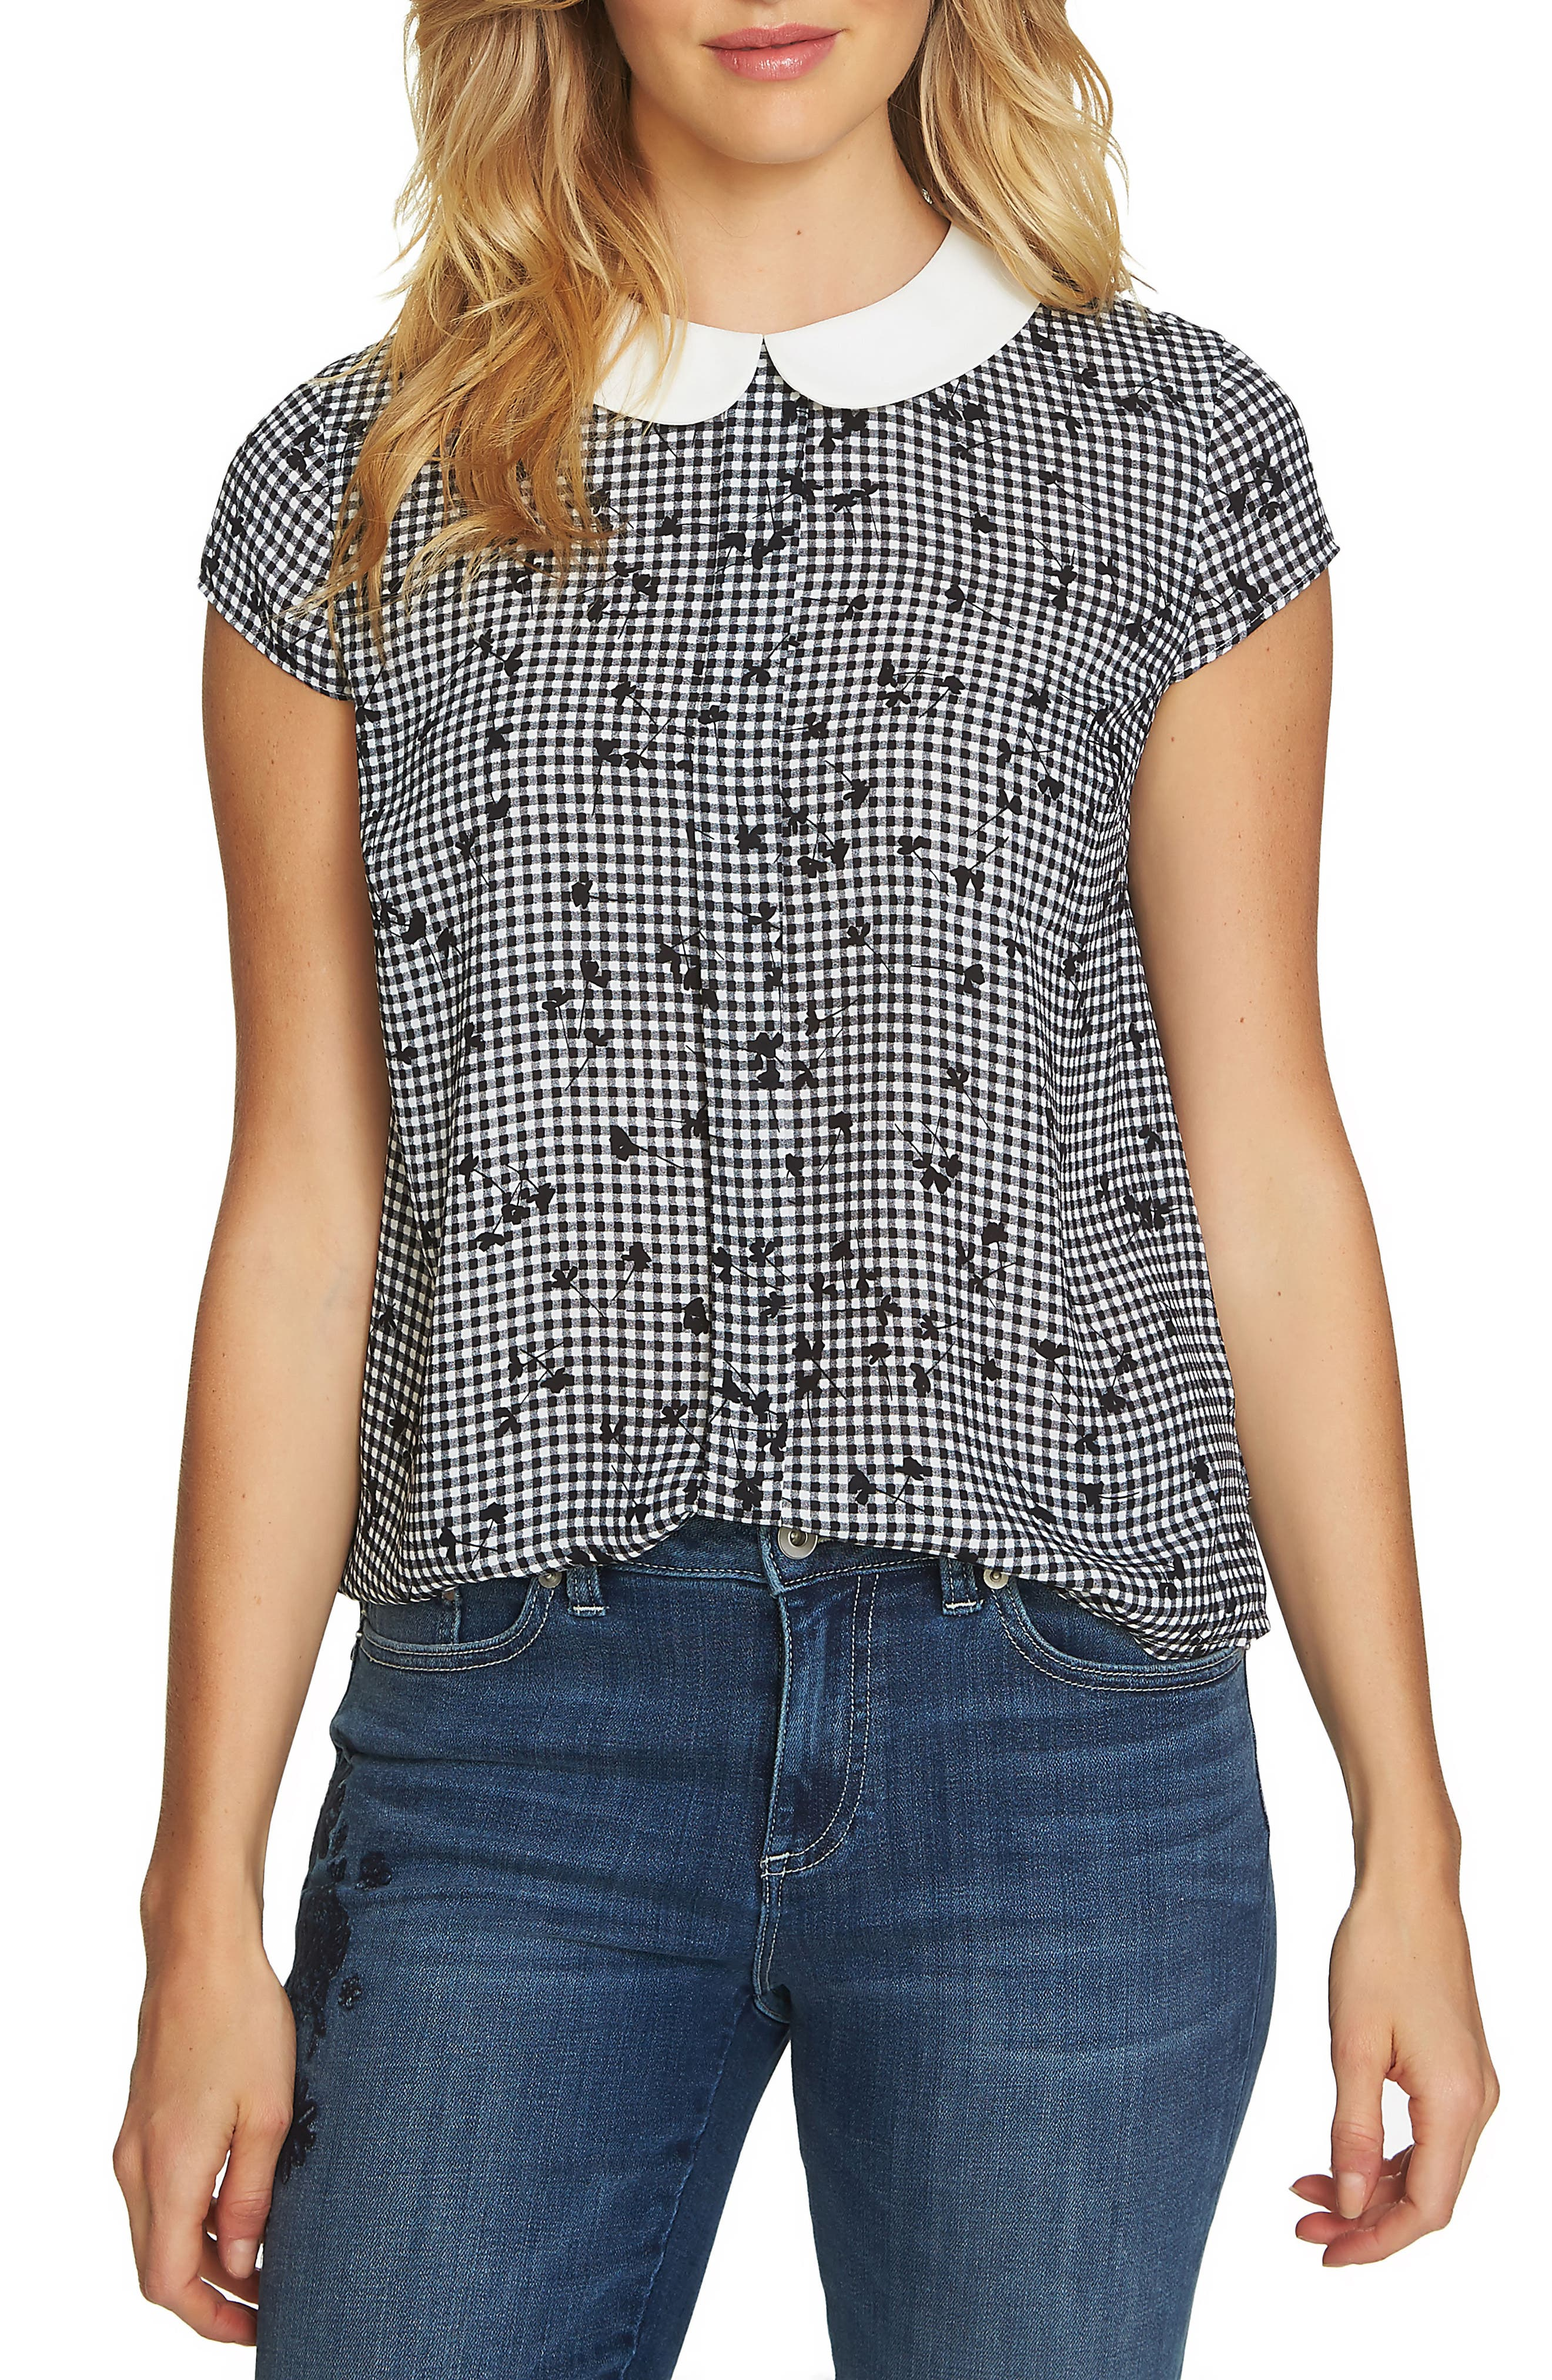 Alternate Image 1 Selected - CeCe Simple Check Ditsy Blouse